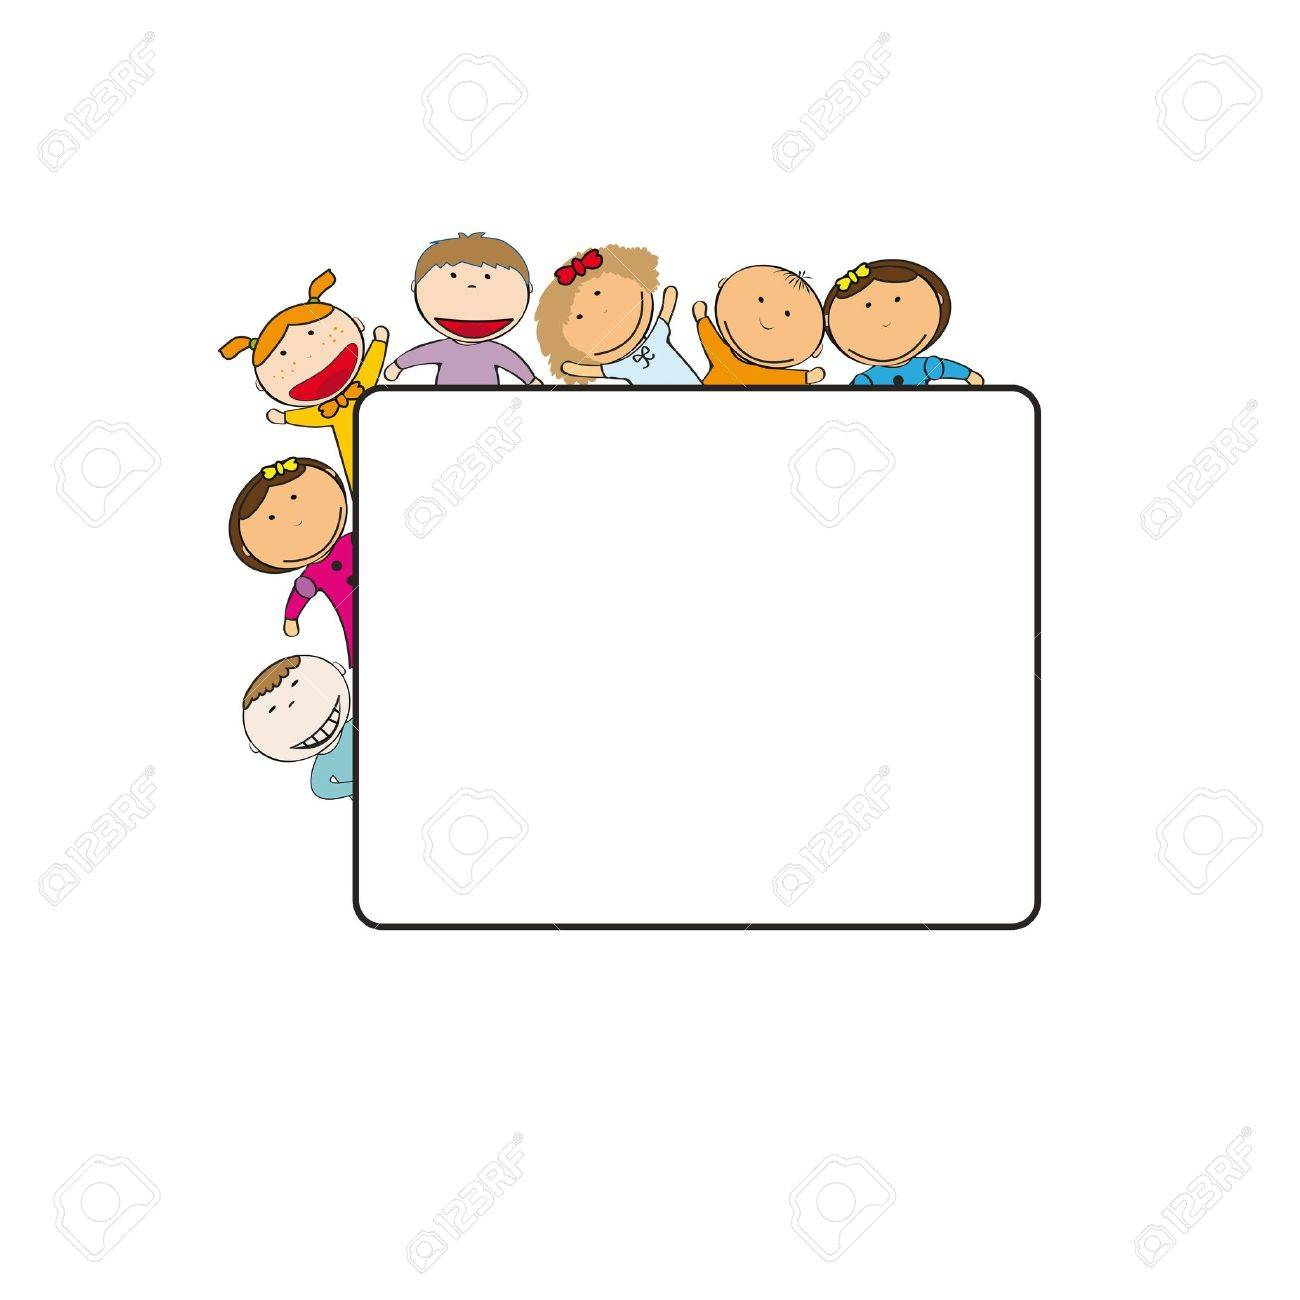 Small and smile kids with banner Stock Vector - 12747286